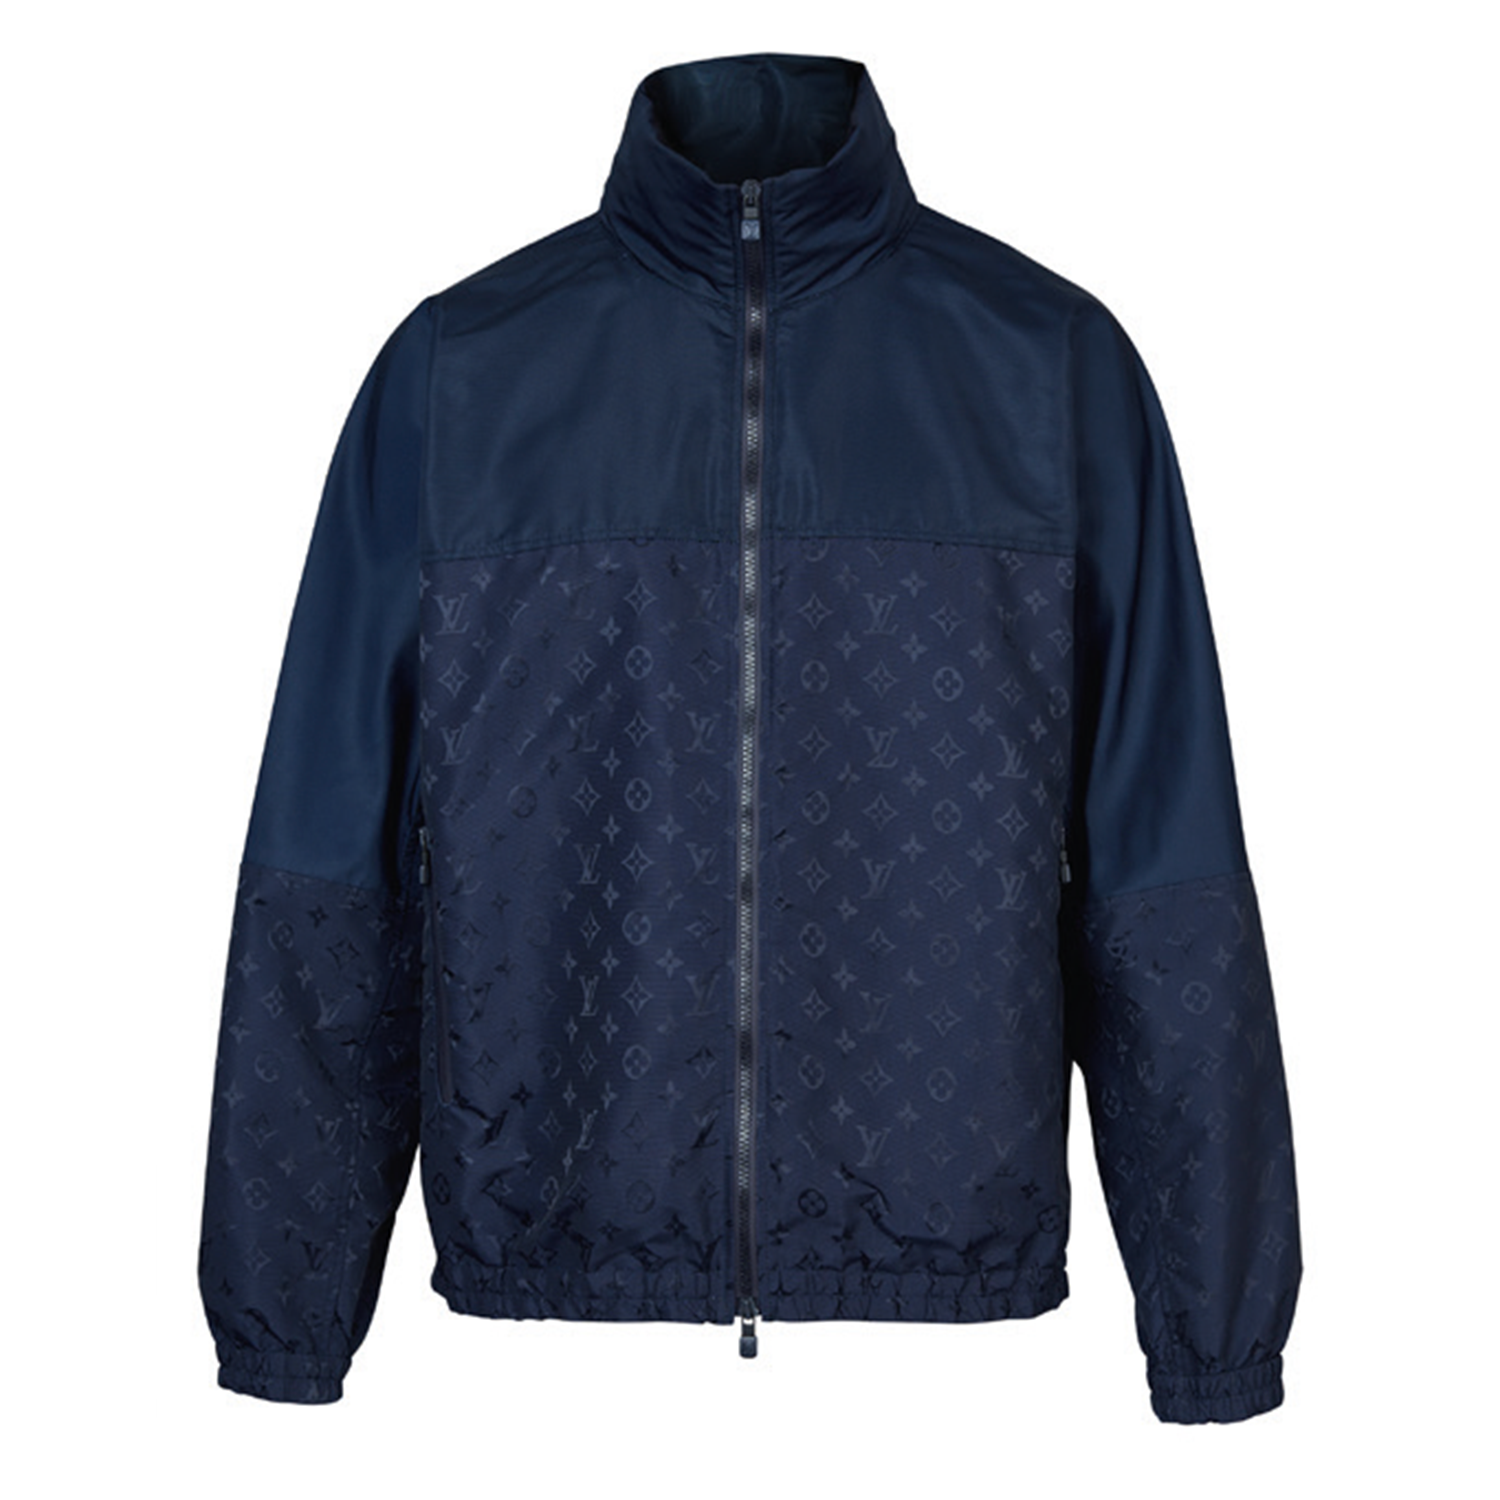 MONOGRAM WINDBREAKER - €1900 $27001a44mjMONOGRAM JACQUARD